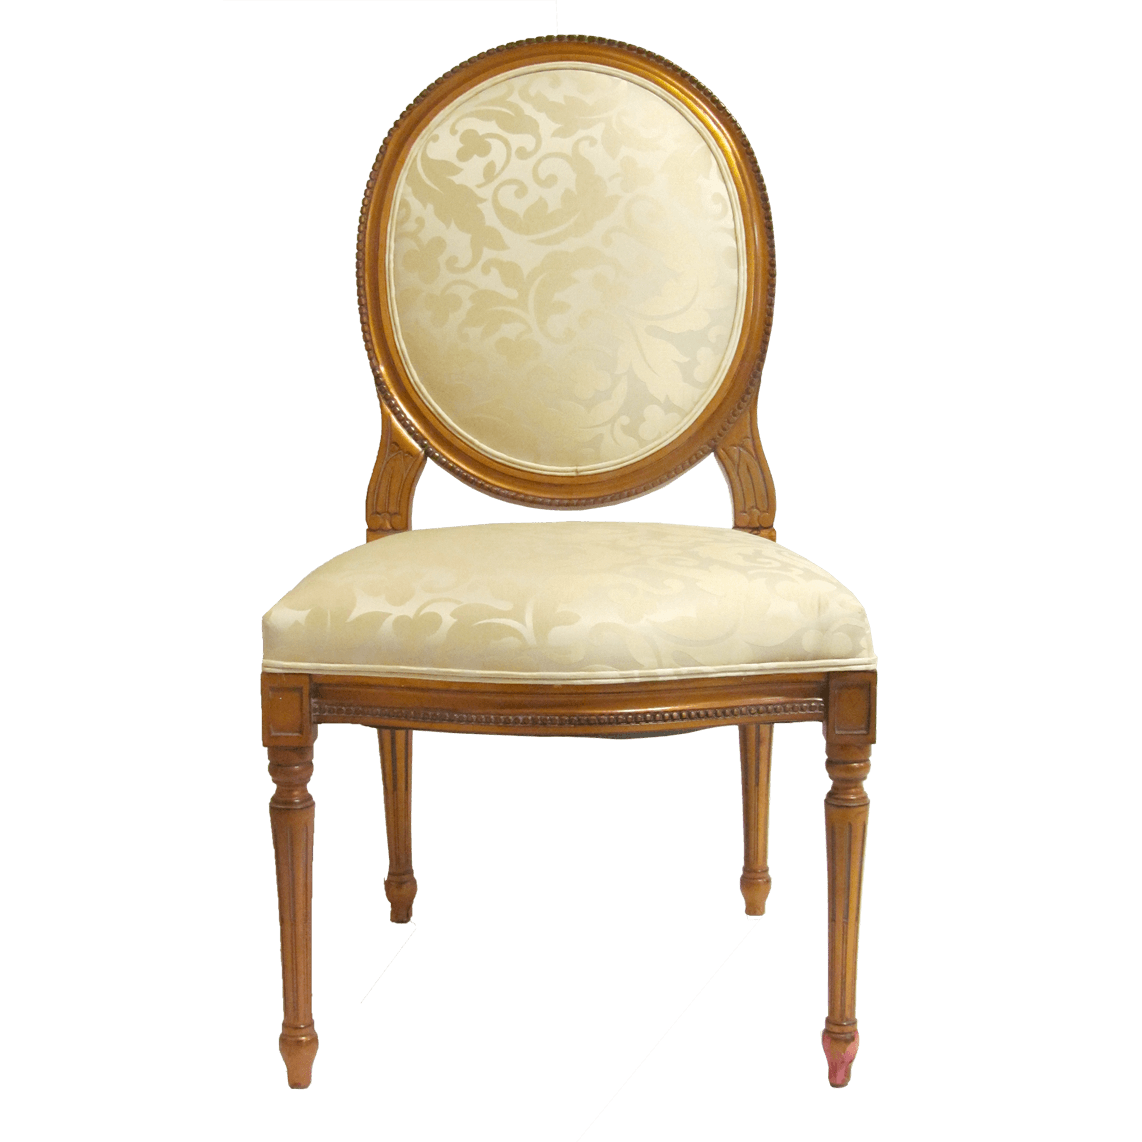 Artistic Dining Chairs Louis Xvi Oval Dining Chair Kdrshowrooms